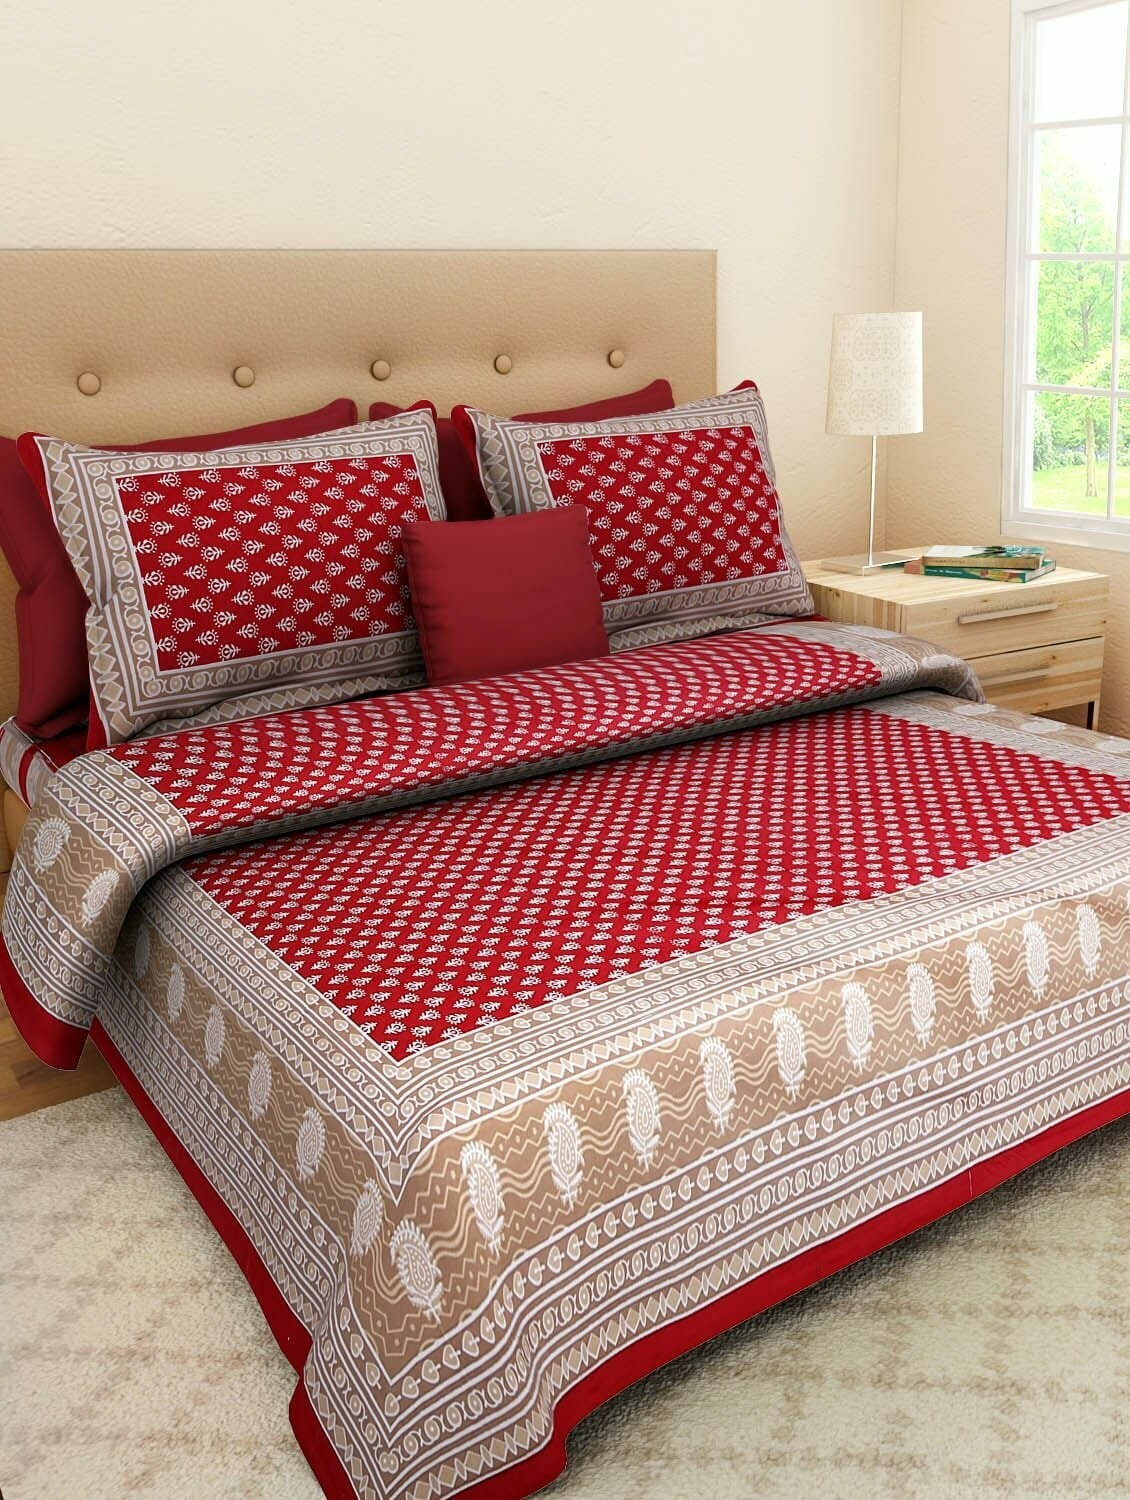 Saganerjaipur Printed Queen size cotton Double bedsheet with two pillow covers .